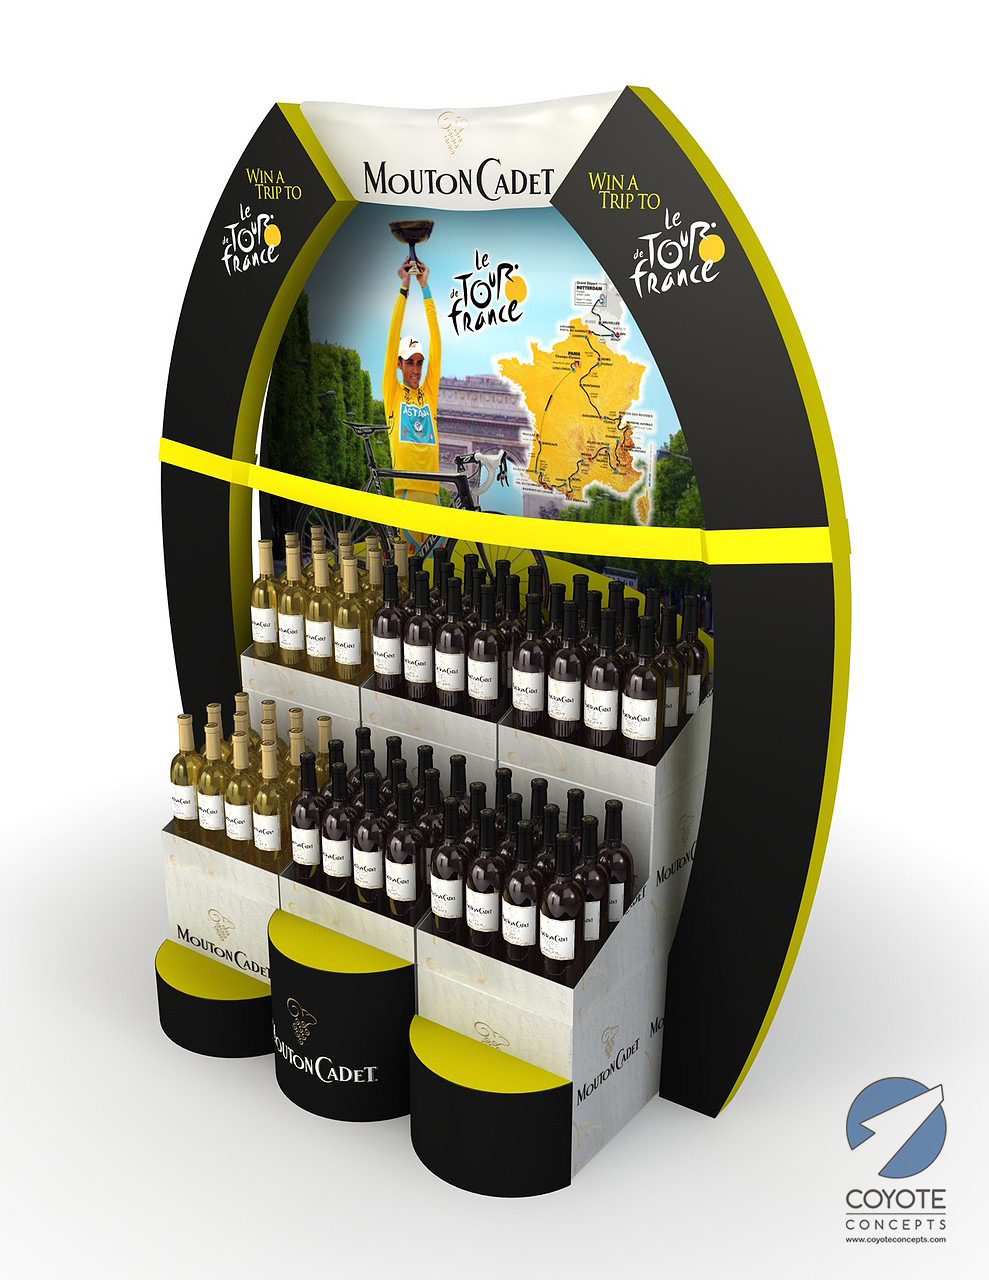 Mouton Cadet Tour De France A.jpg